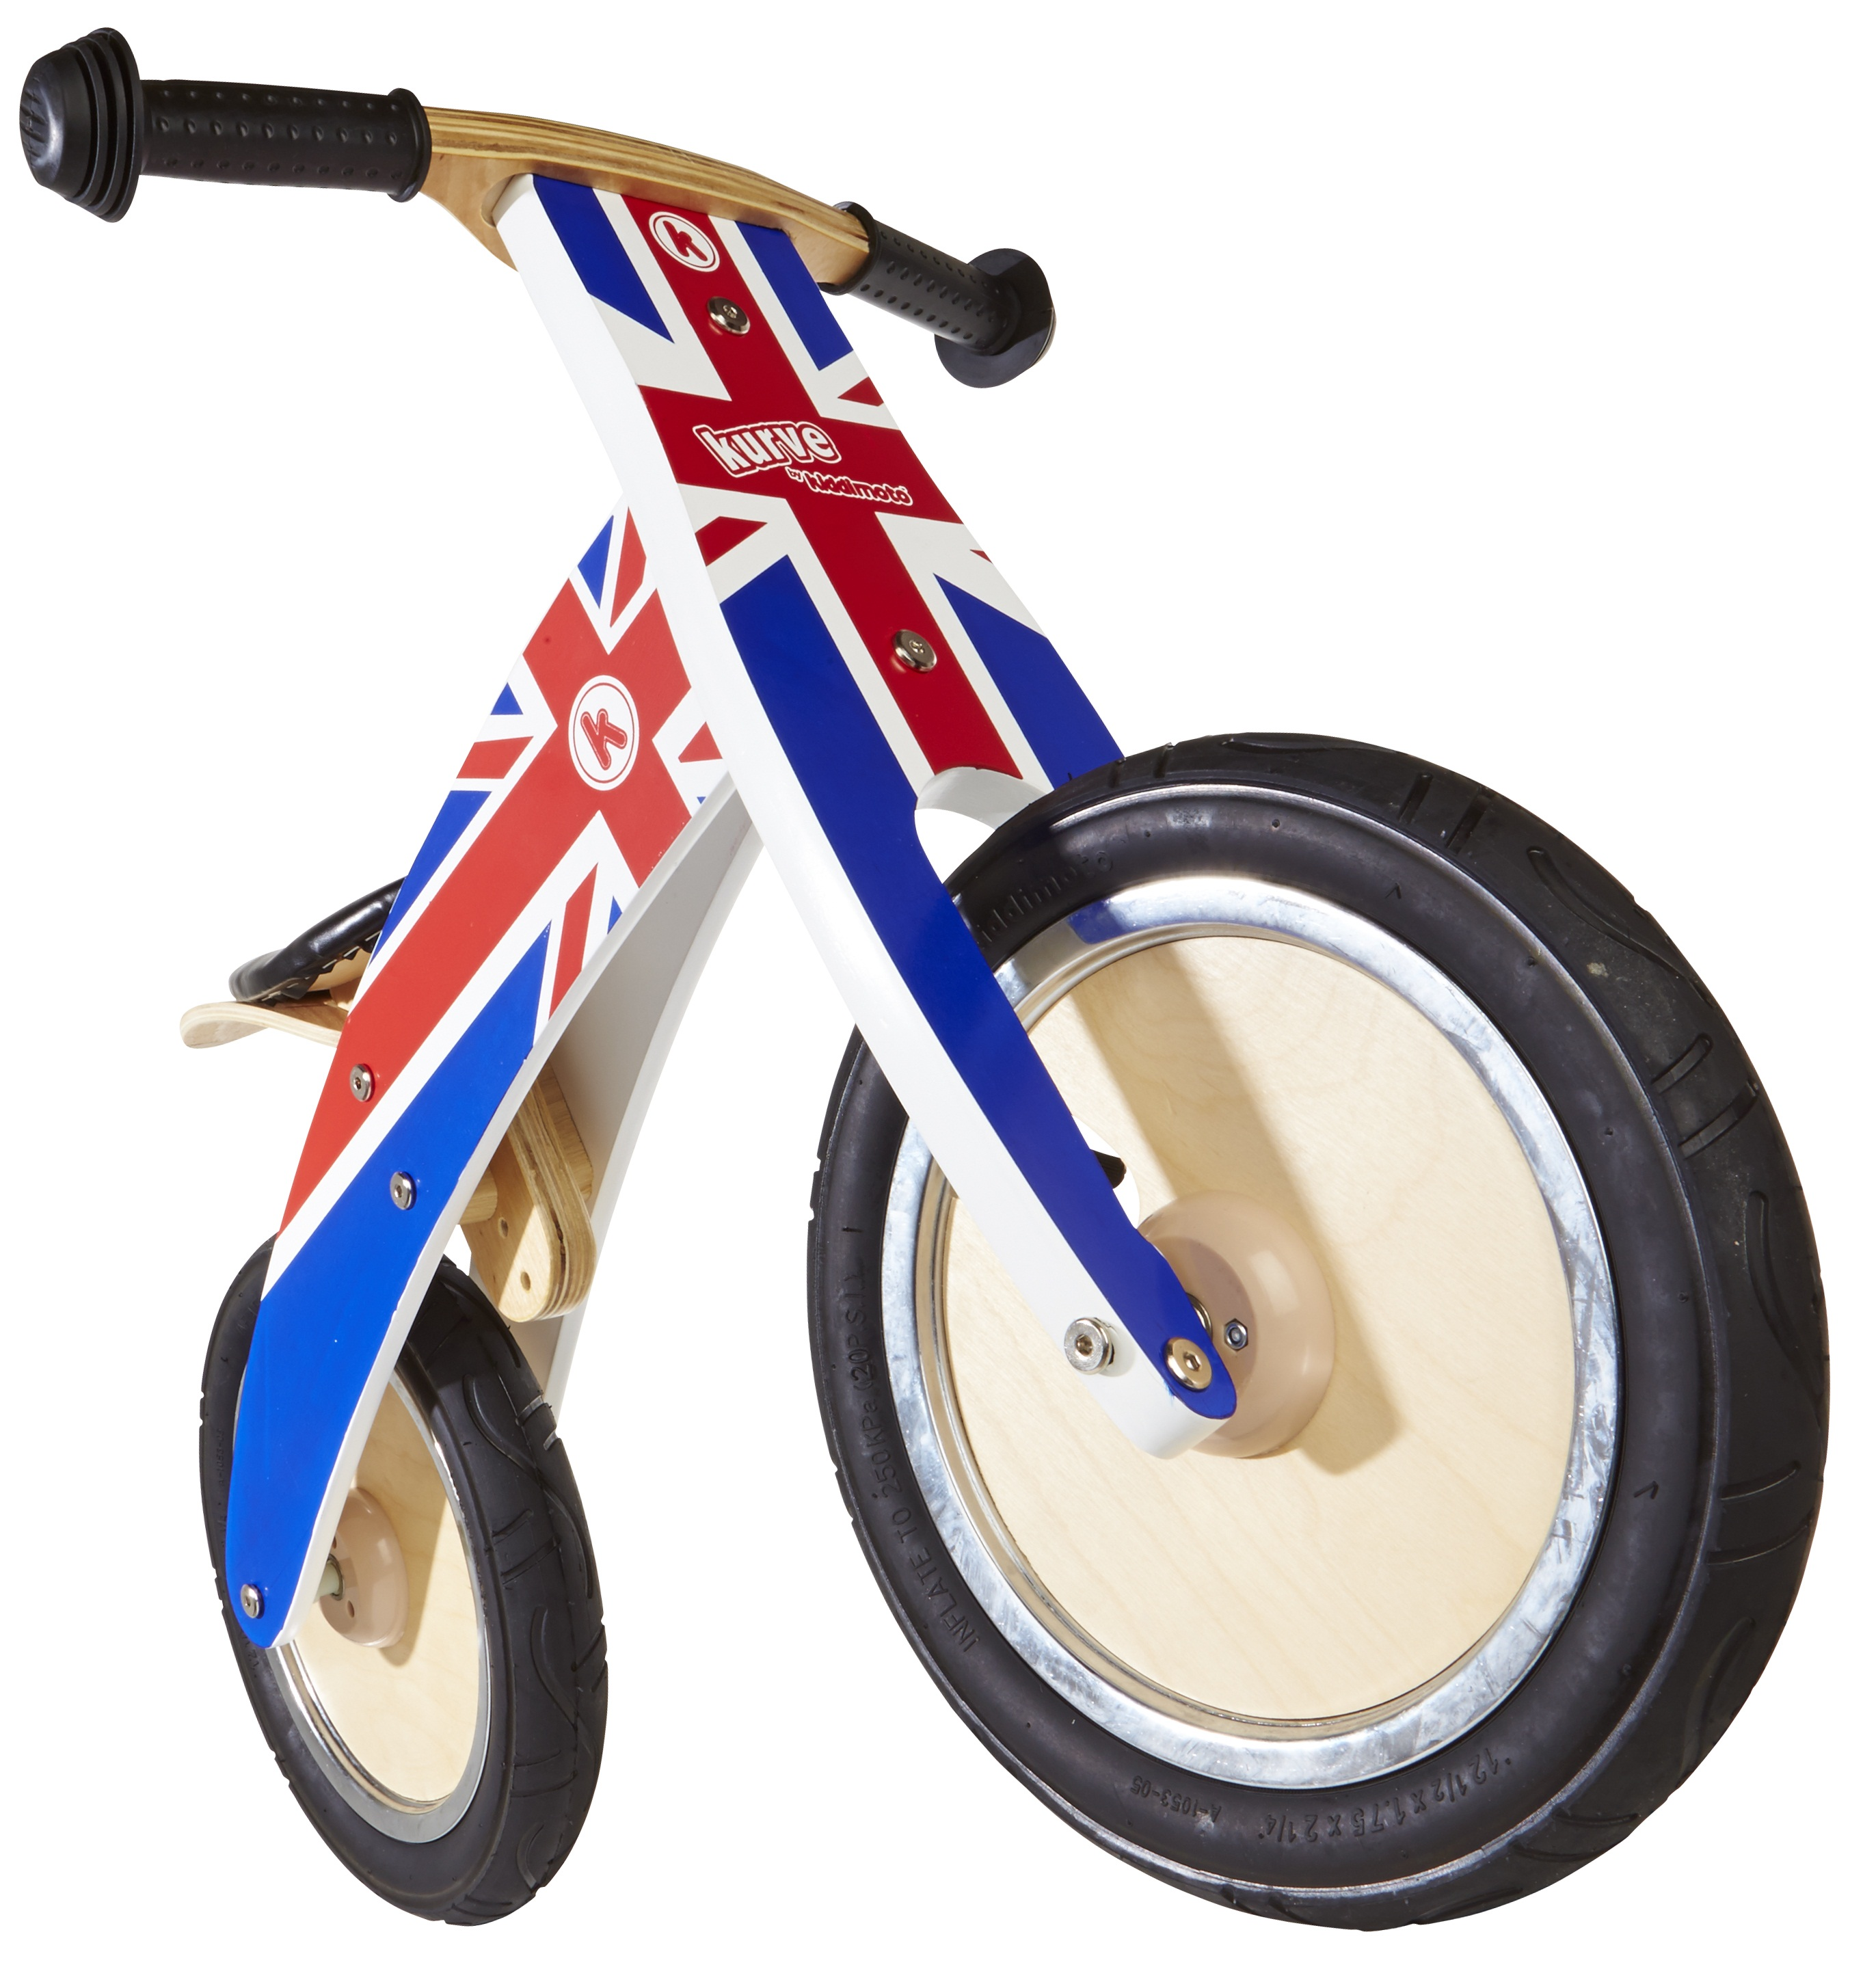 Union Jack Kurve front www.kiddimoto.co.uk